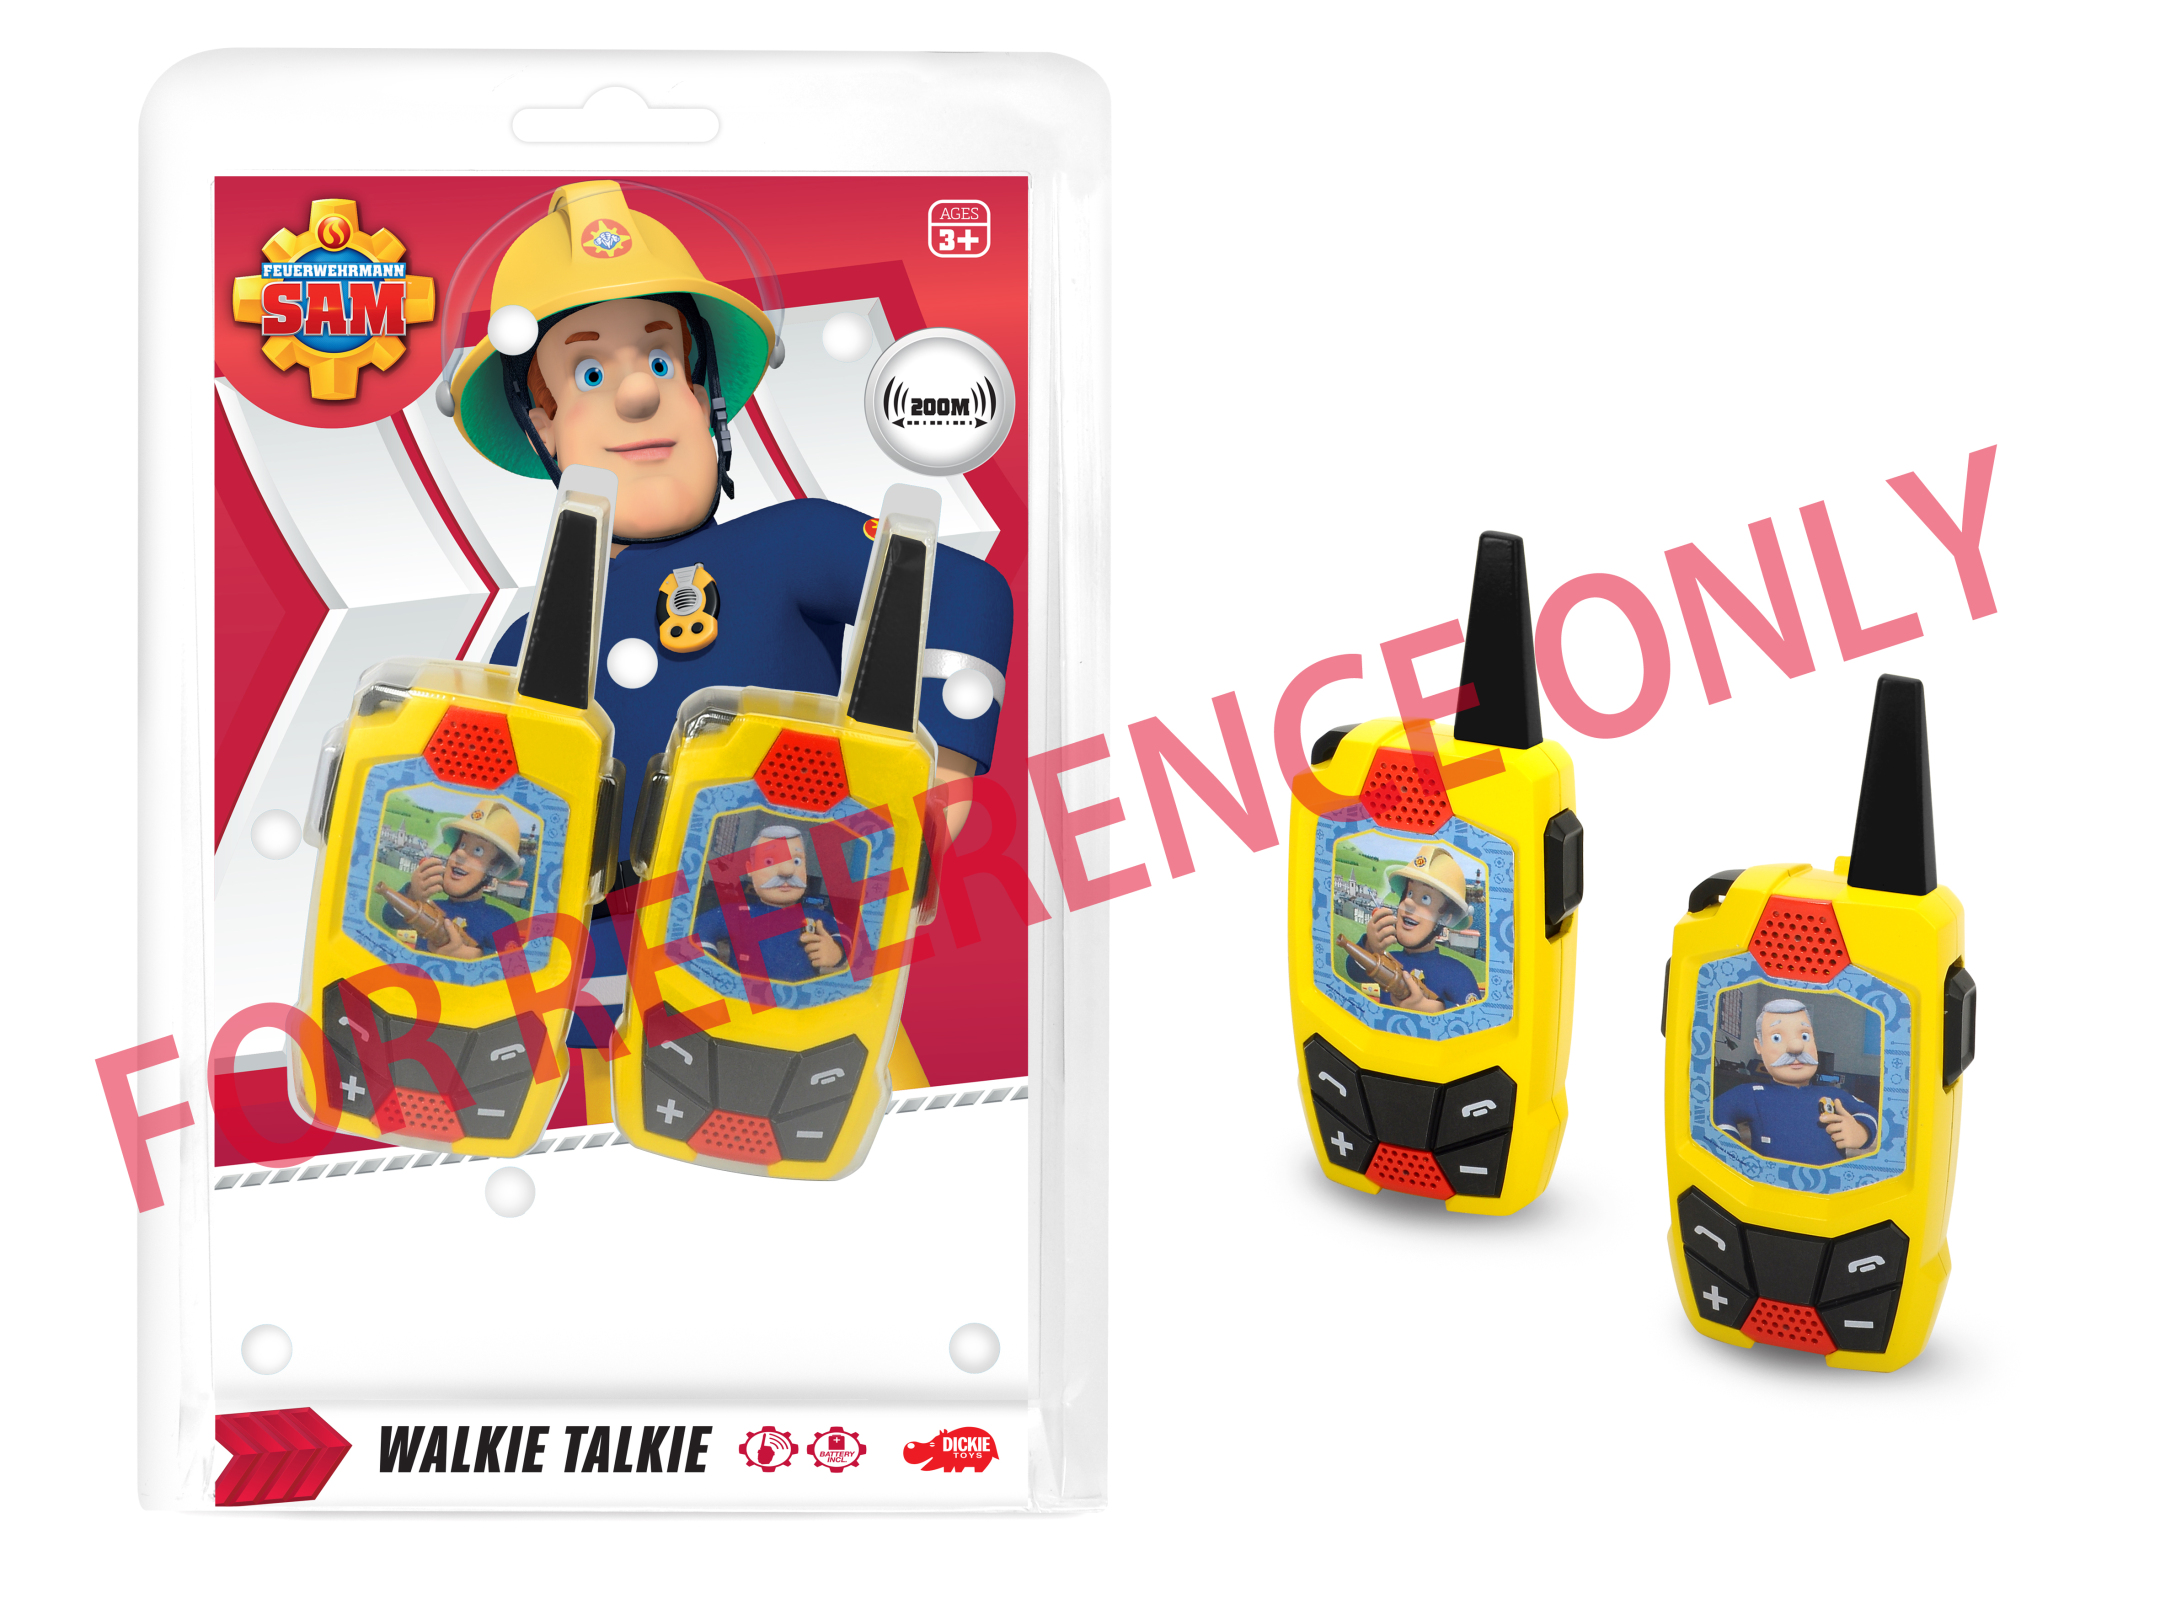 Fireman Sam Walkie Talkie